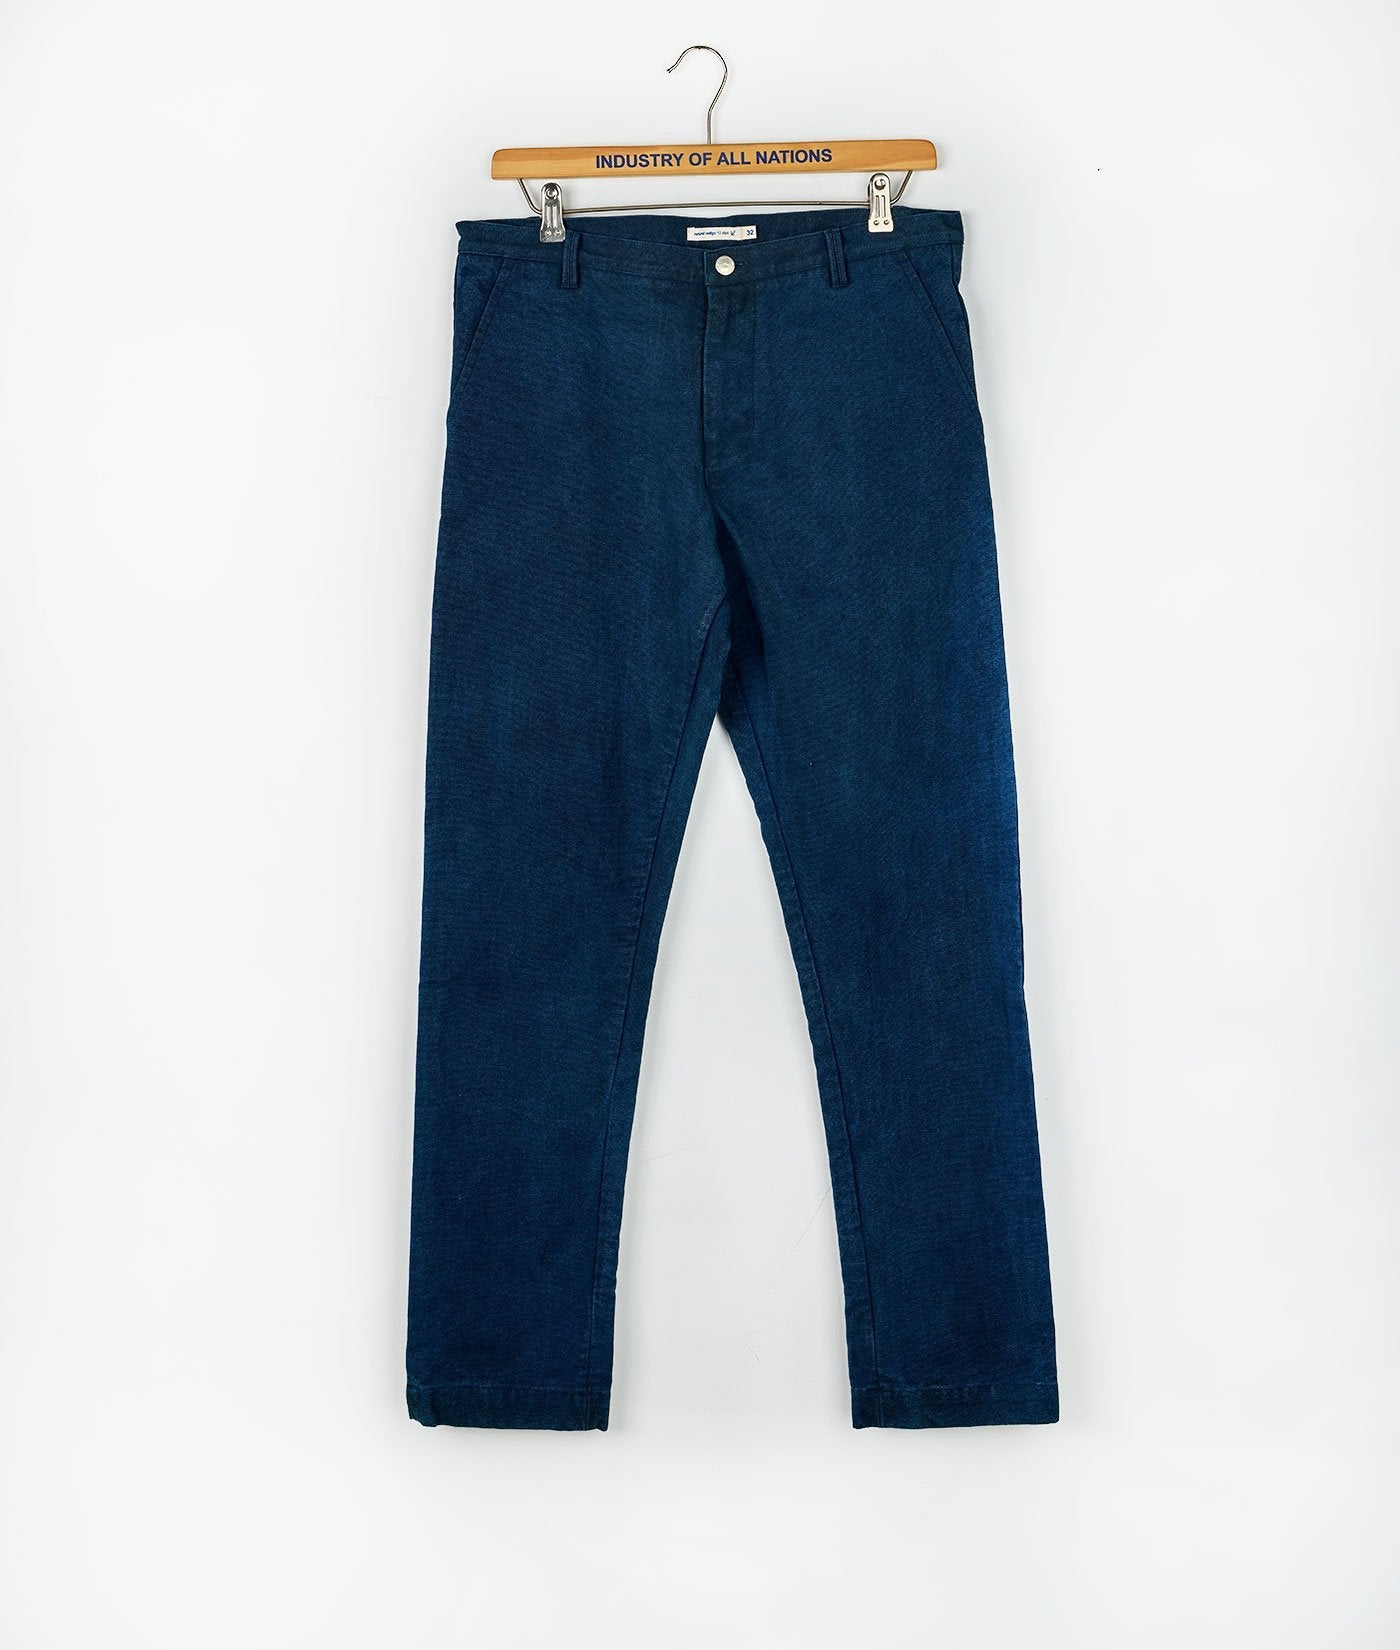 Industry of All Nations Organic Cotton Canvas Work Pants Indigo 12